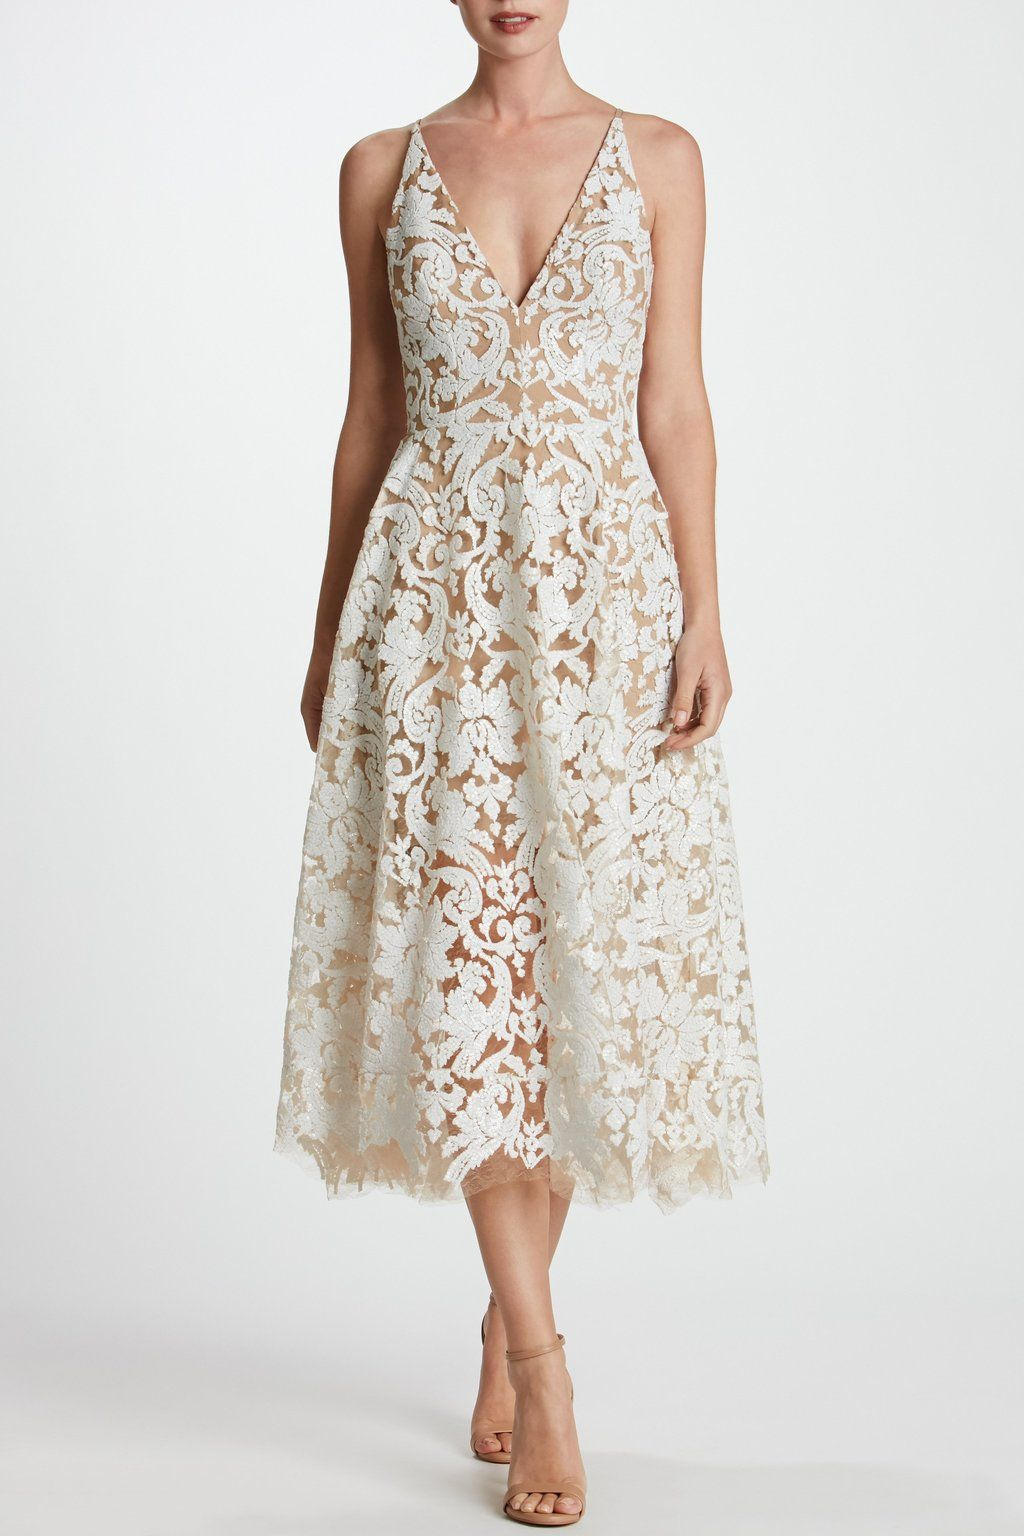 e6ffa79e9f6df $269 Blair Sequin Lace Fit and Flare Midi Dress (White) - Gorgeous pattern  w/ sequins